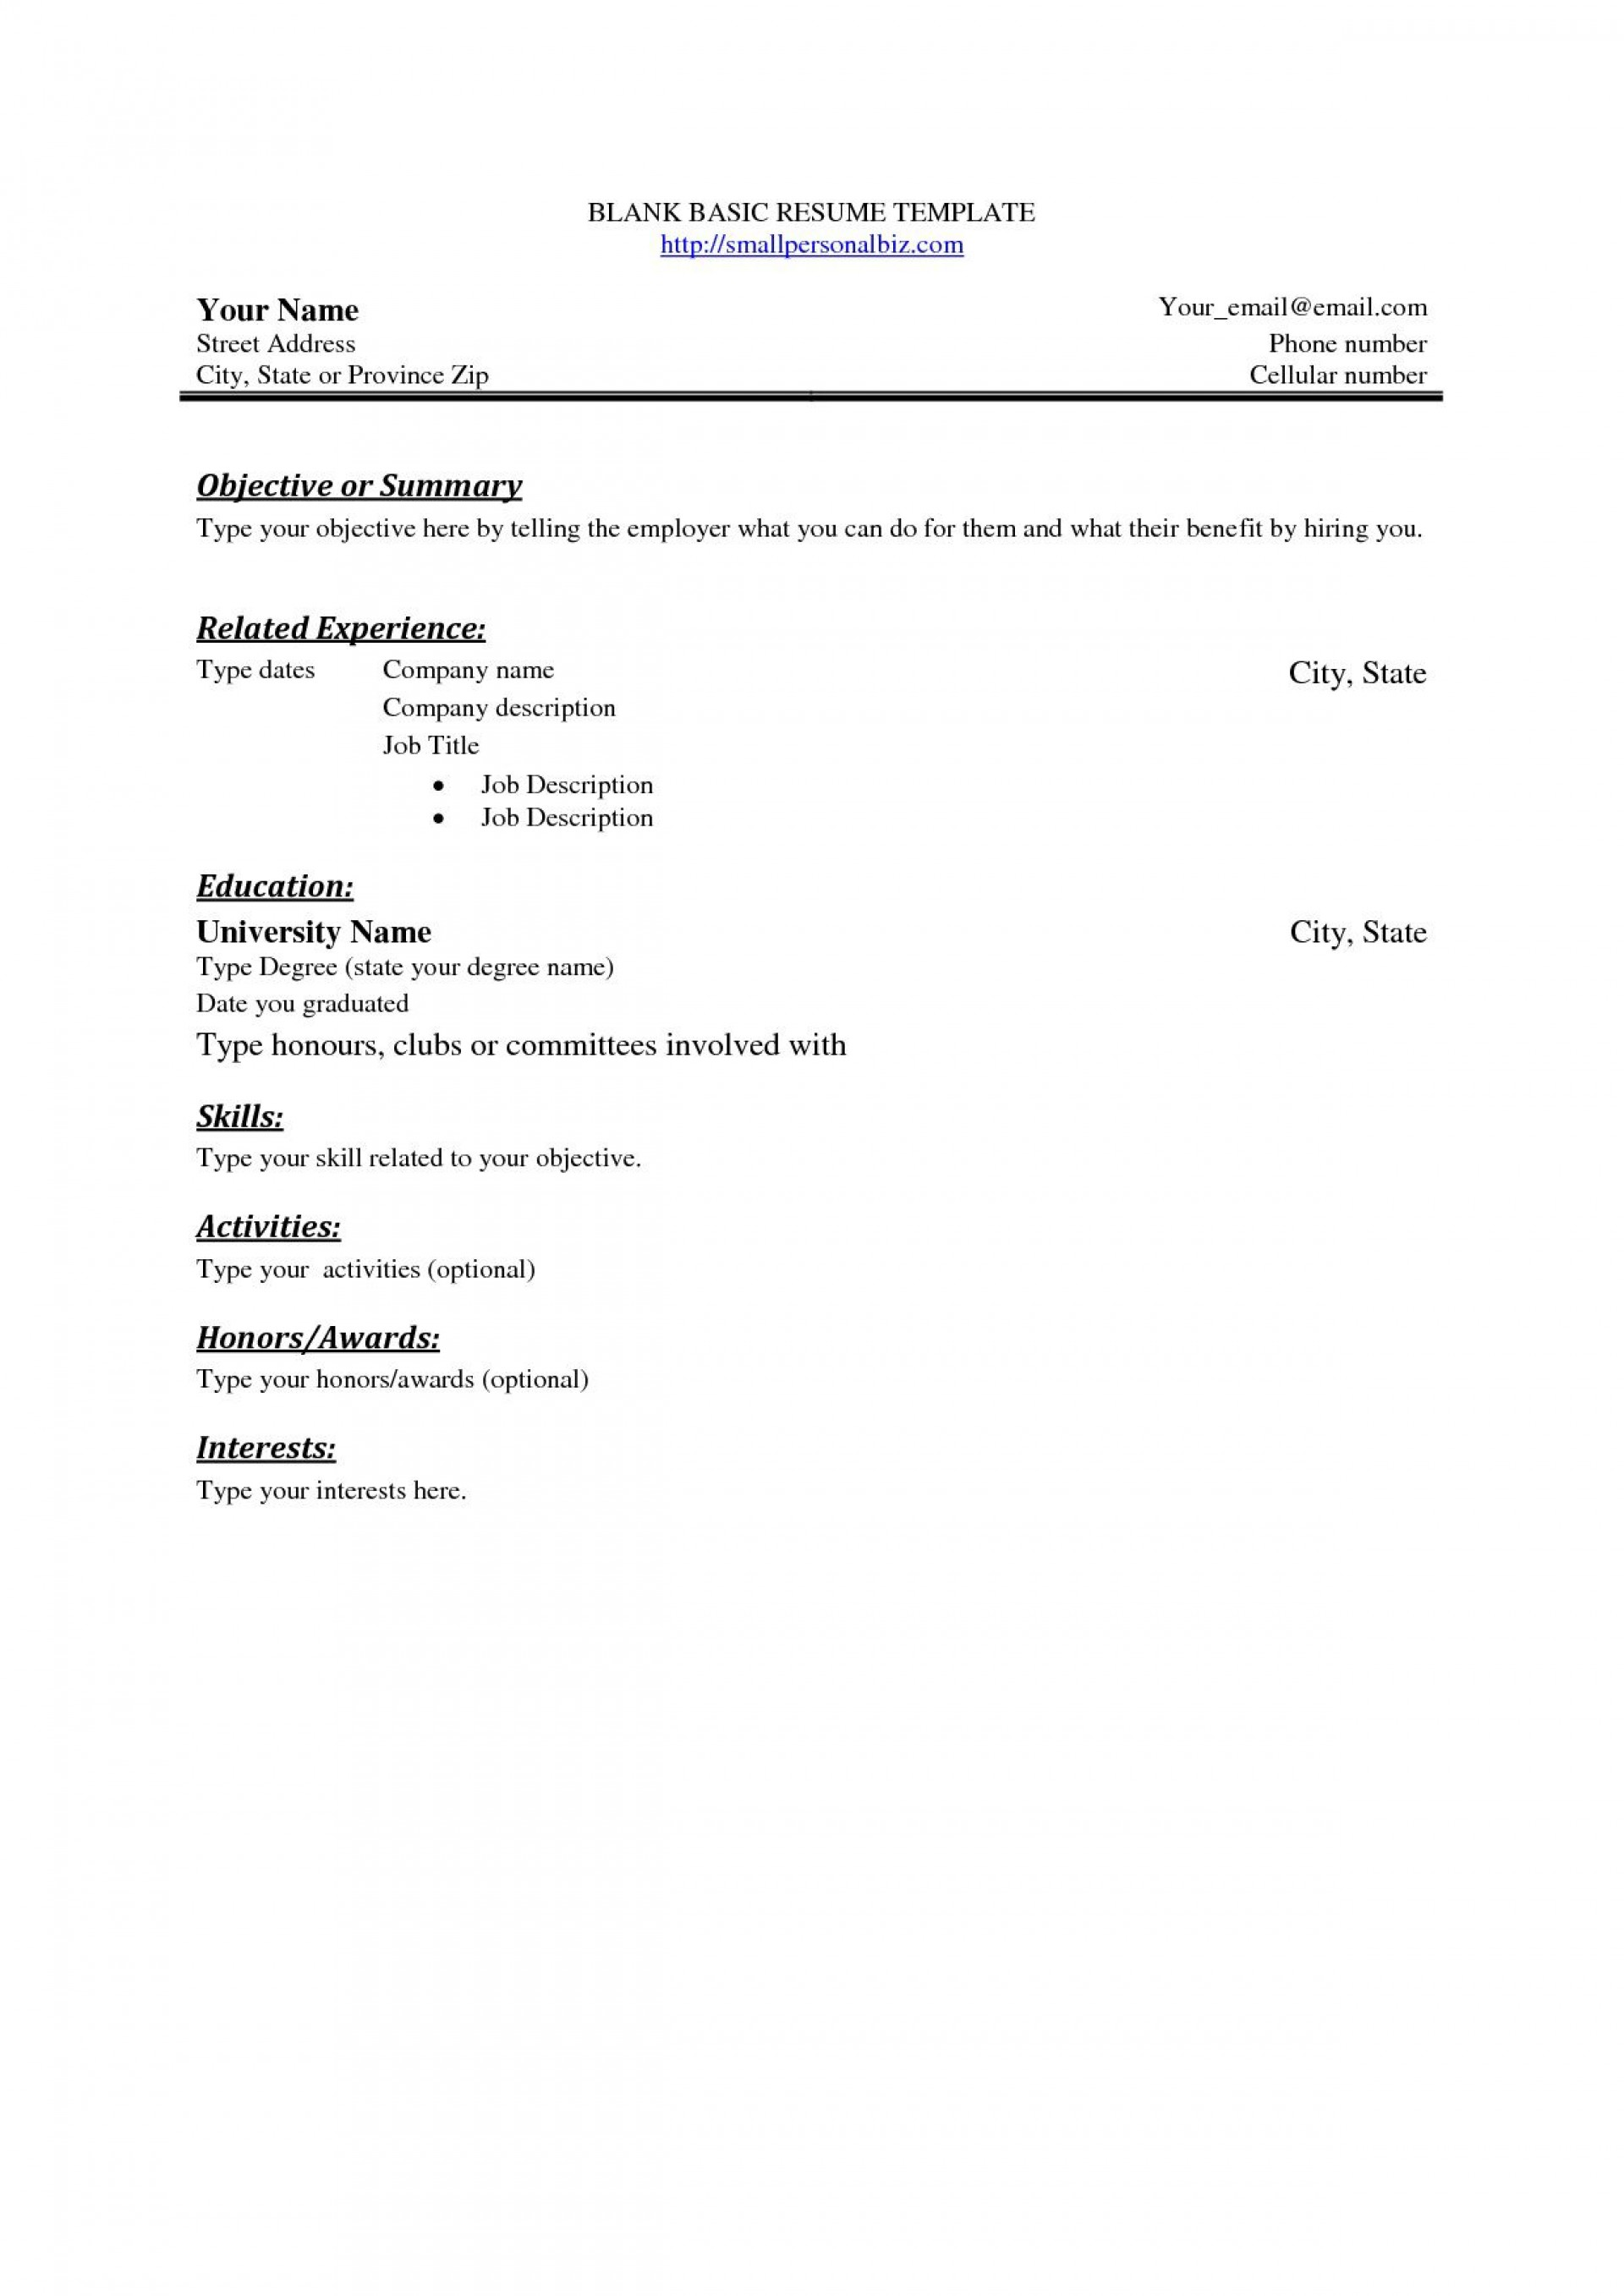 003 Frightening Basic Resume Template Free Highest Quality  Easy Download Word Australia Doc1920